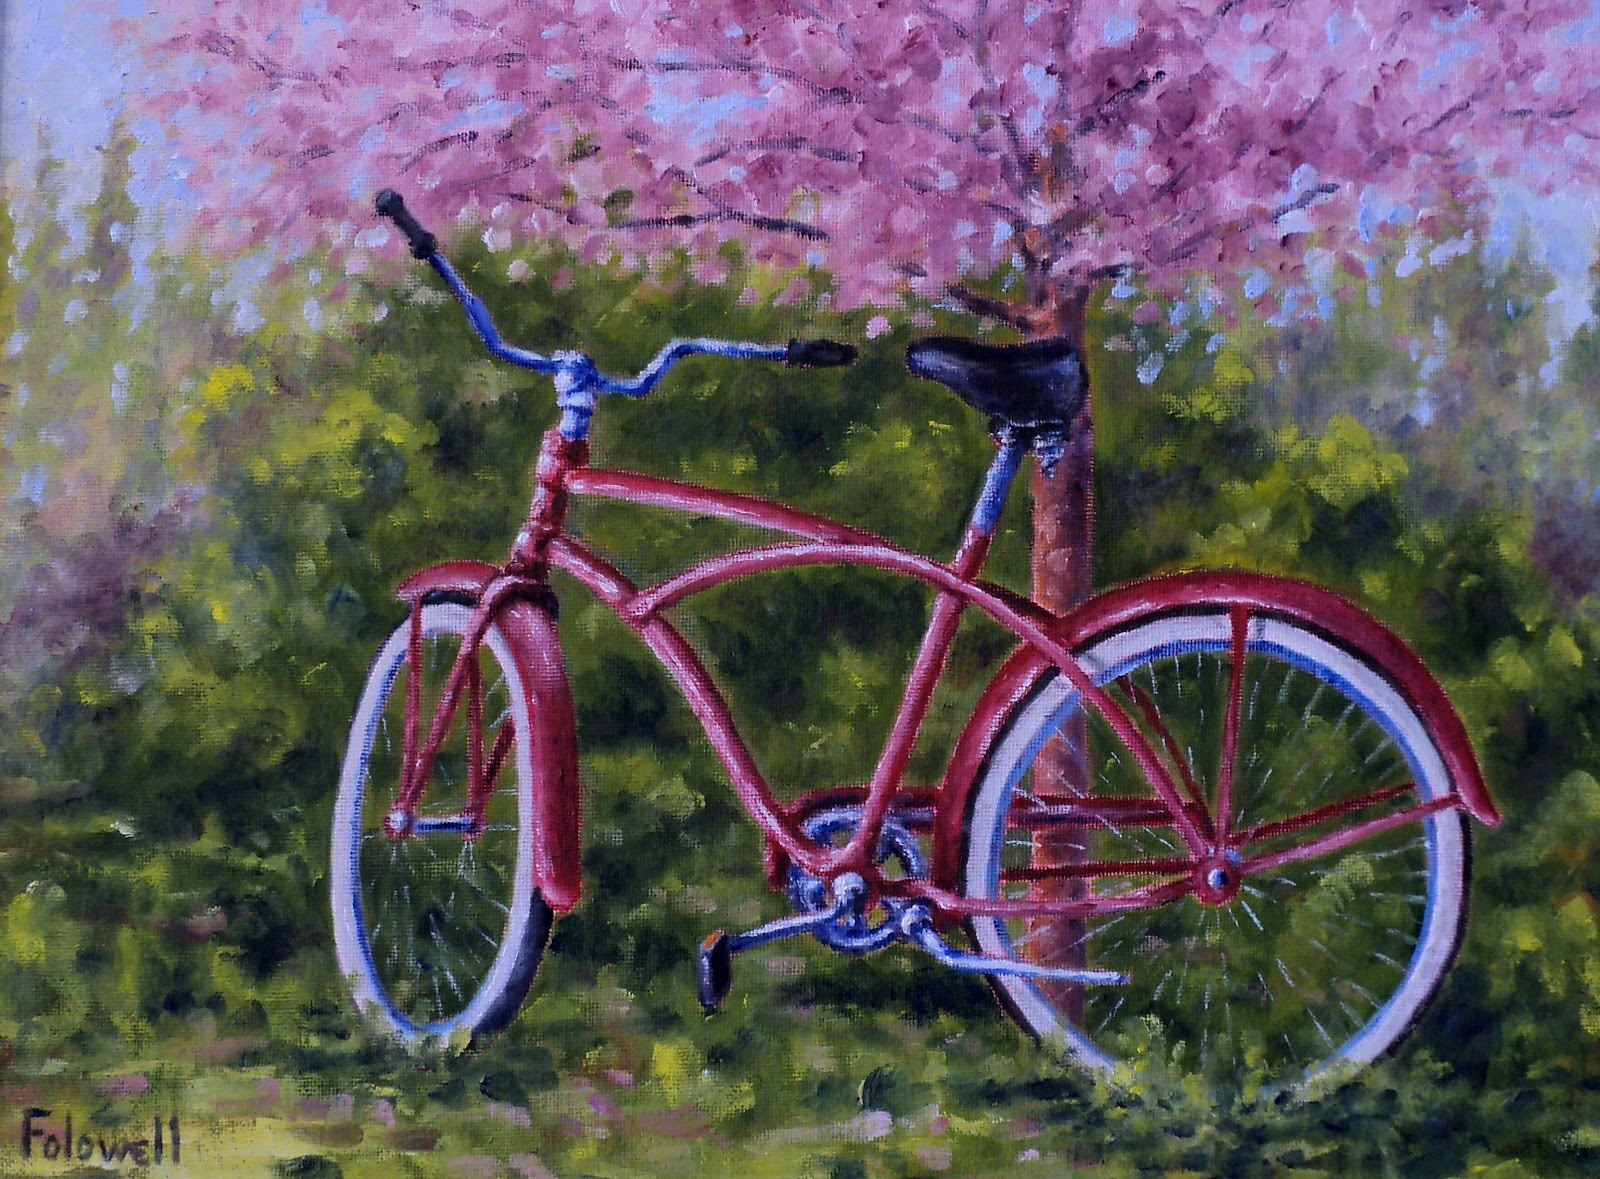 Bicycle painting bing images for Bicycle painting near me